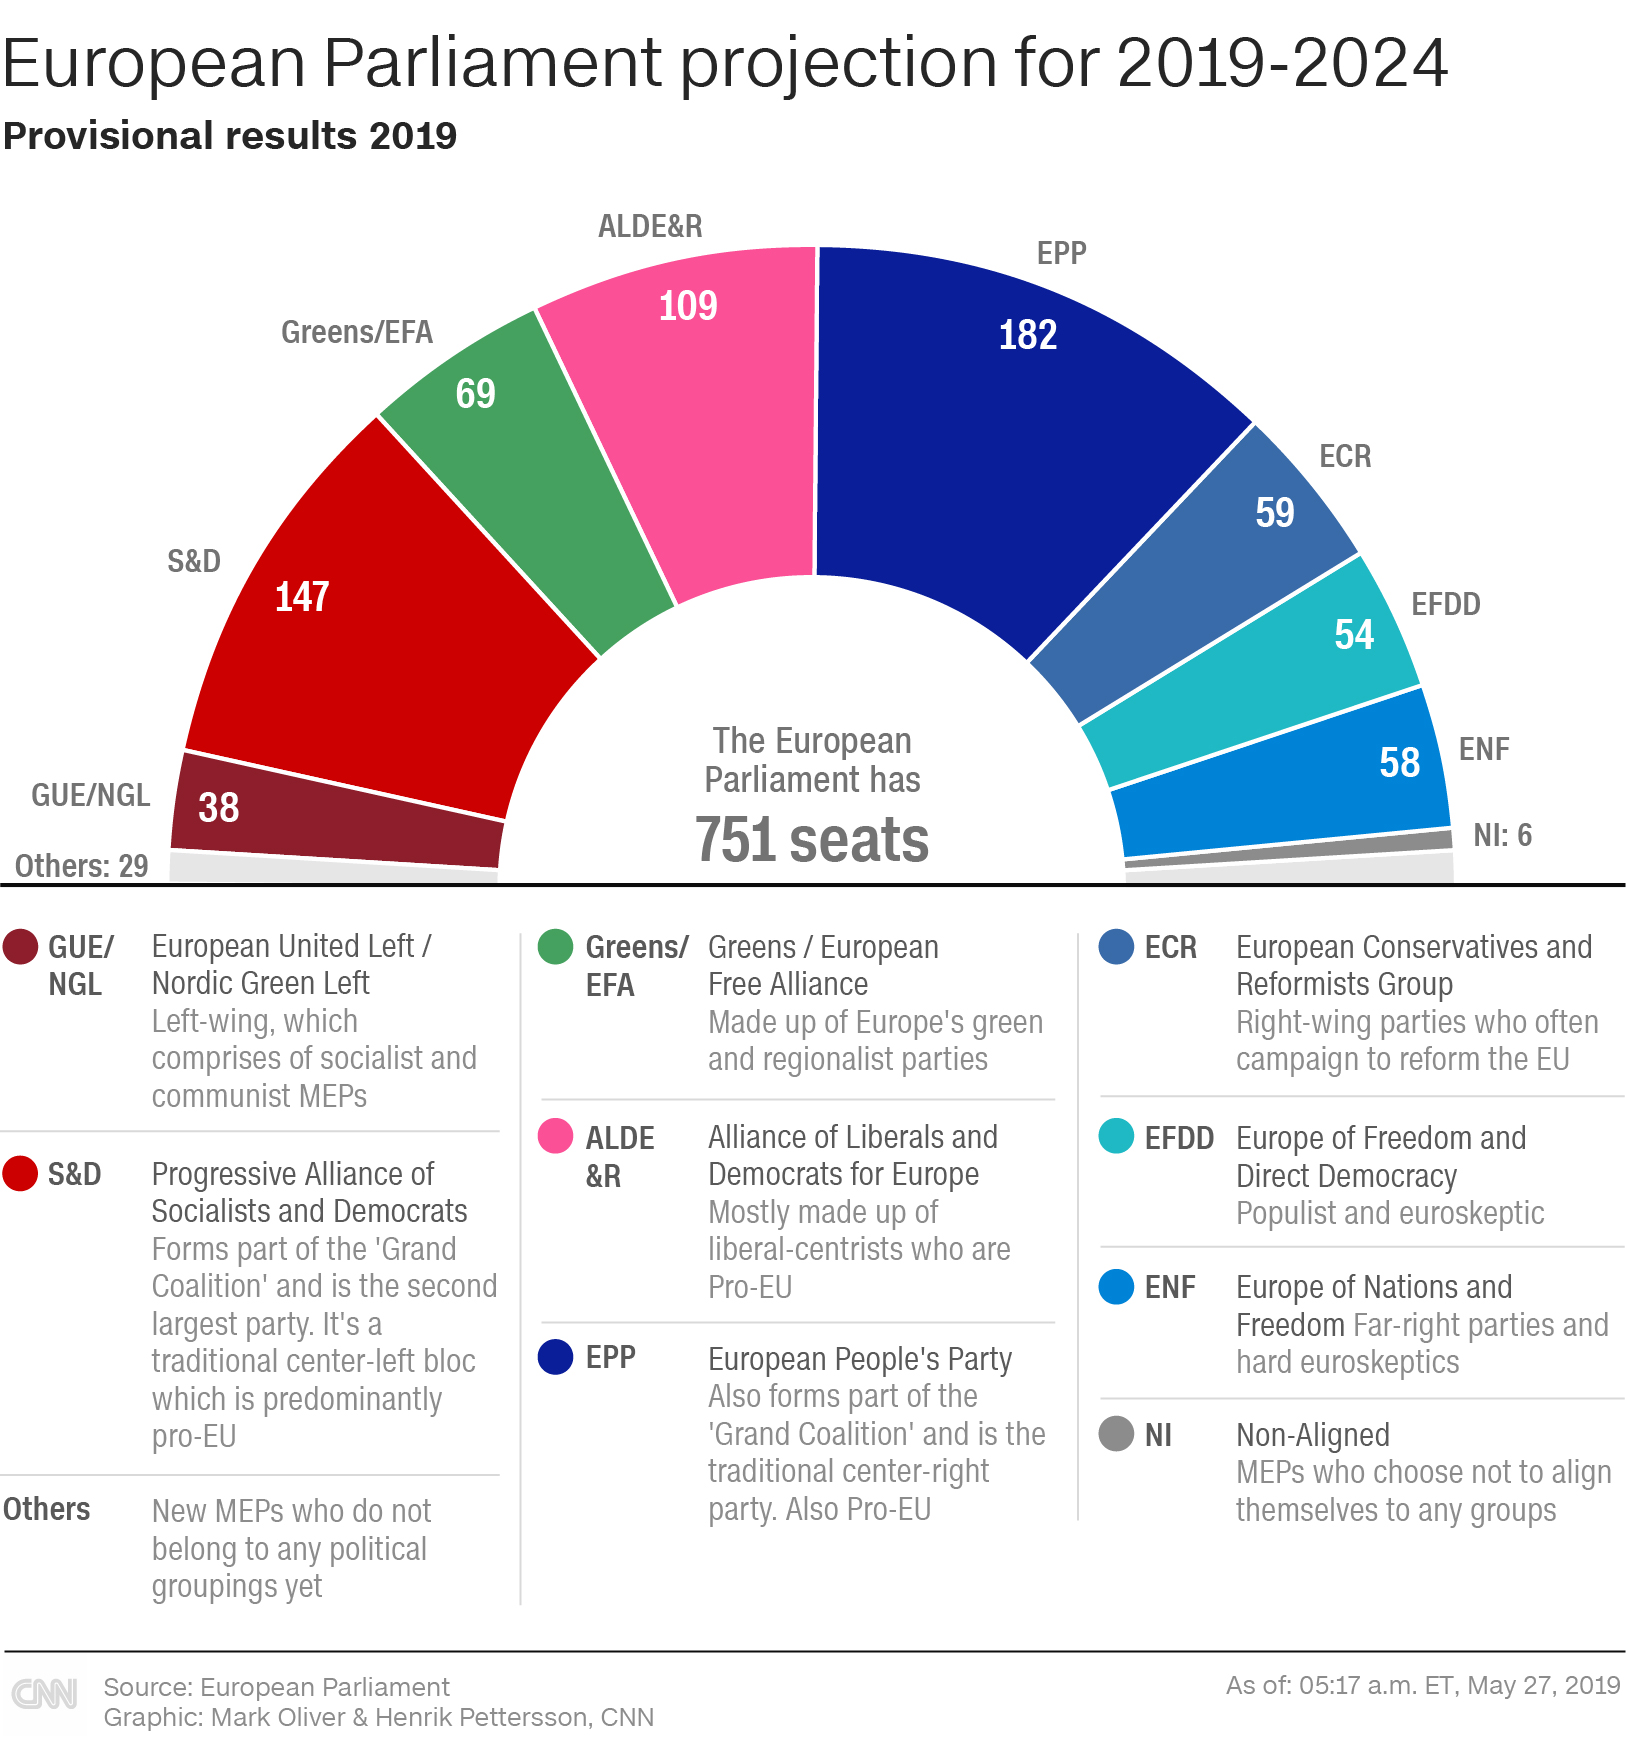 European Parliament projection for 2019-2024